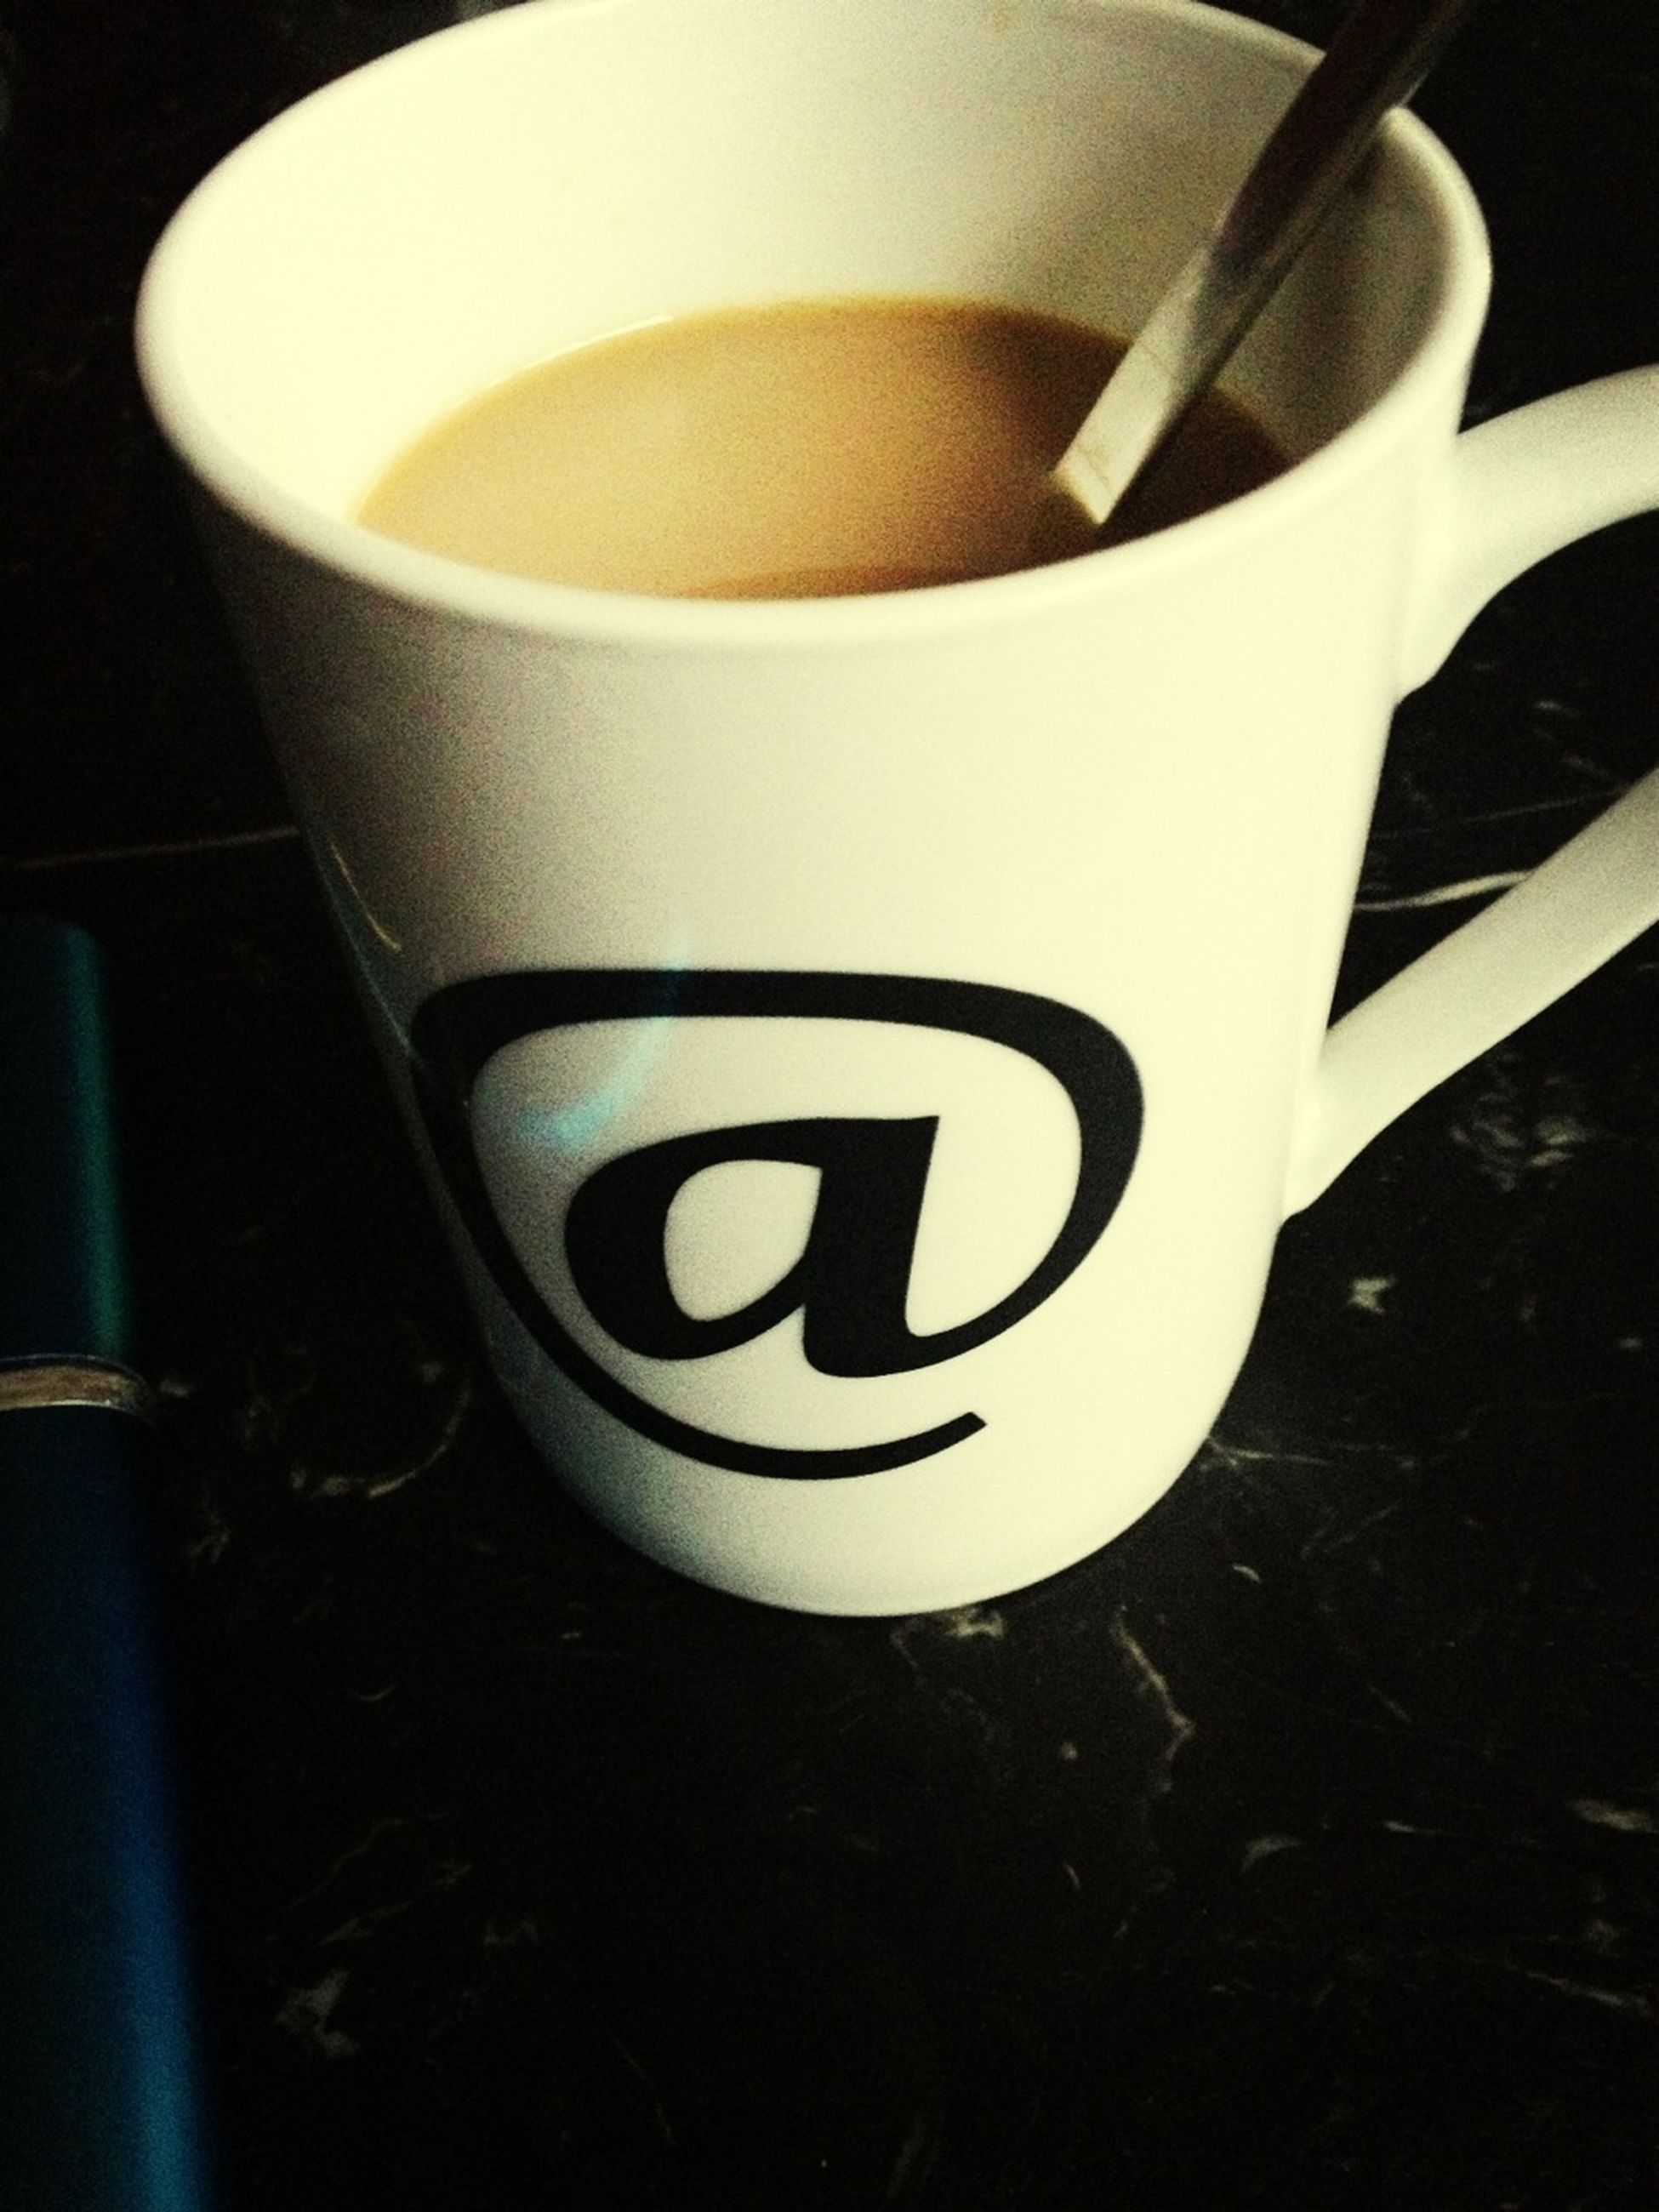 indoors, coffee cup, drink, table, close-up, still life, food and drink, high angle view, saucer, refreshment, coffee - drink, cup, coffee, no people, communication, white color, text, spoon, western script, focus on foreground